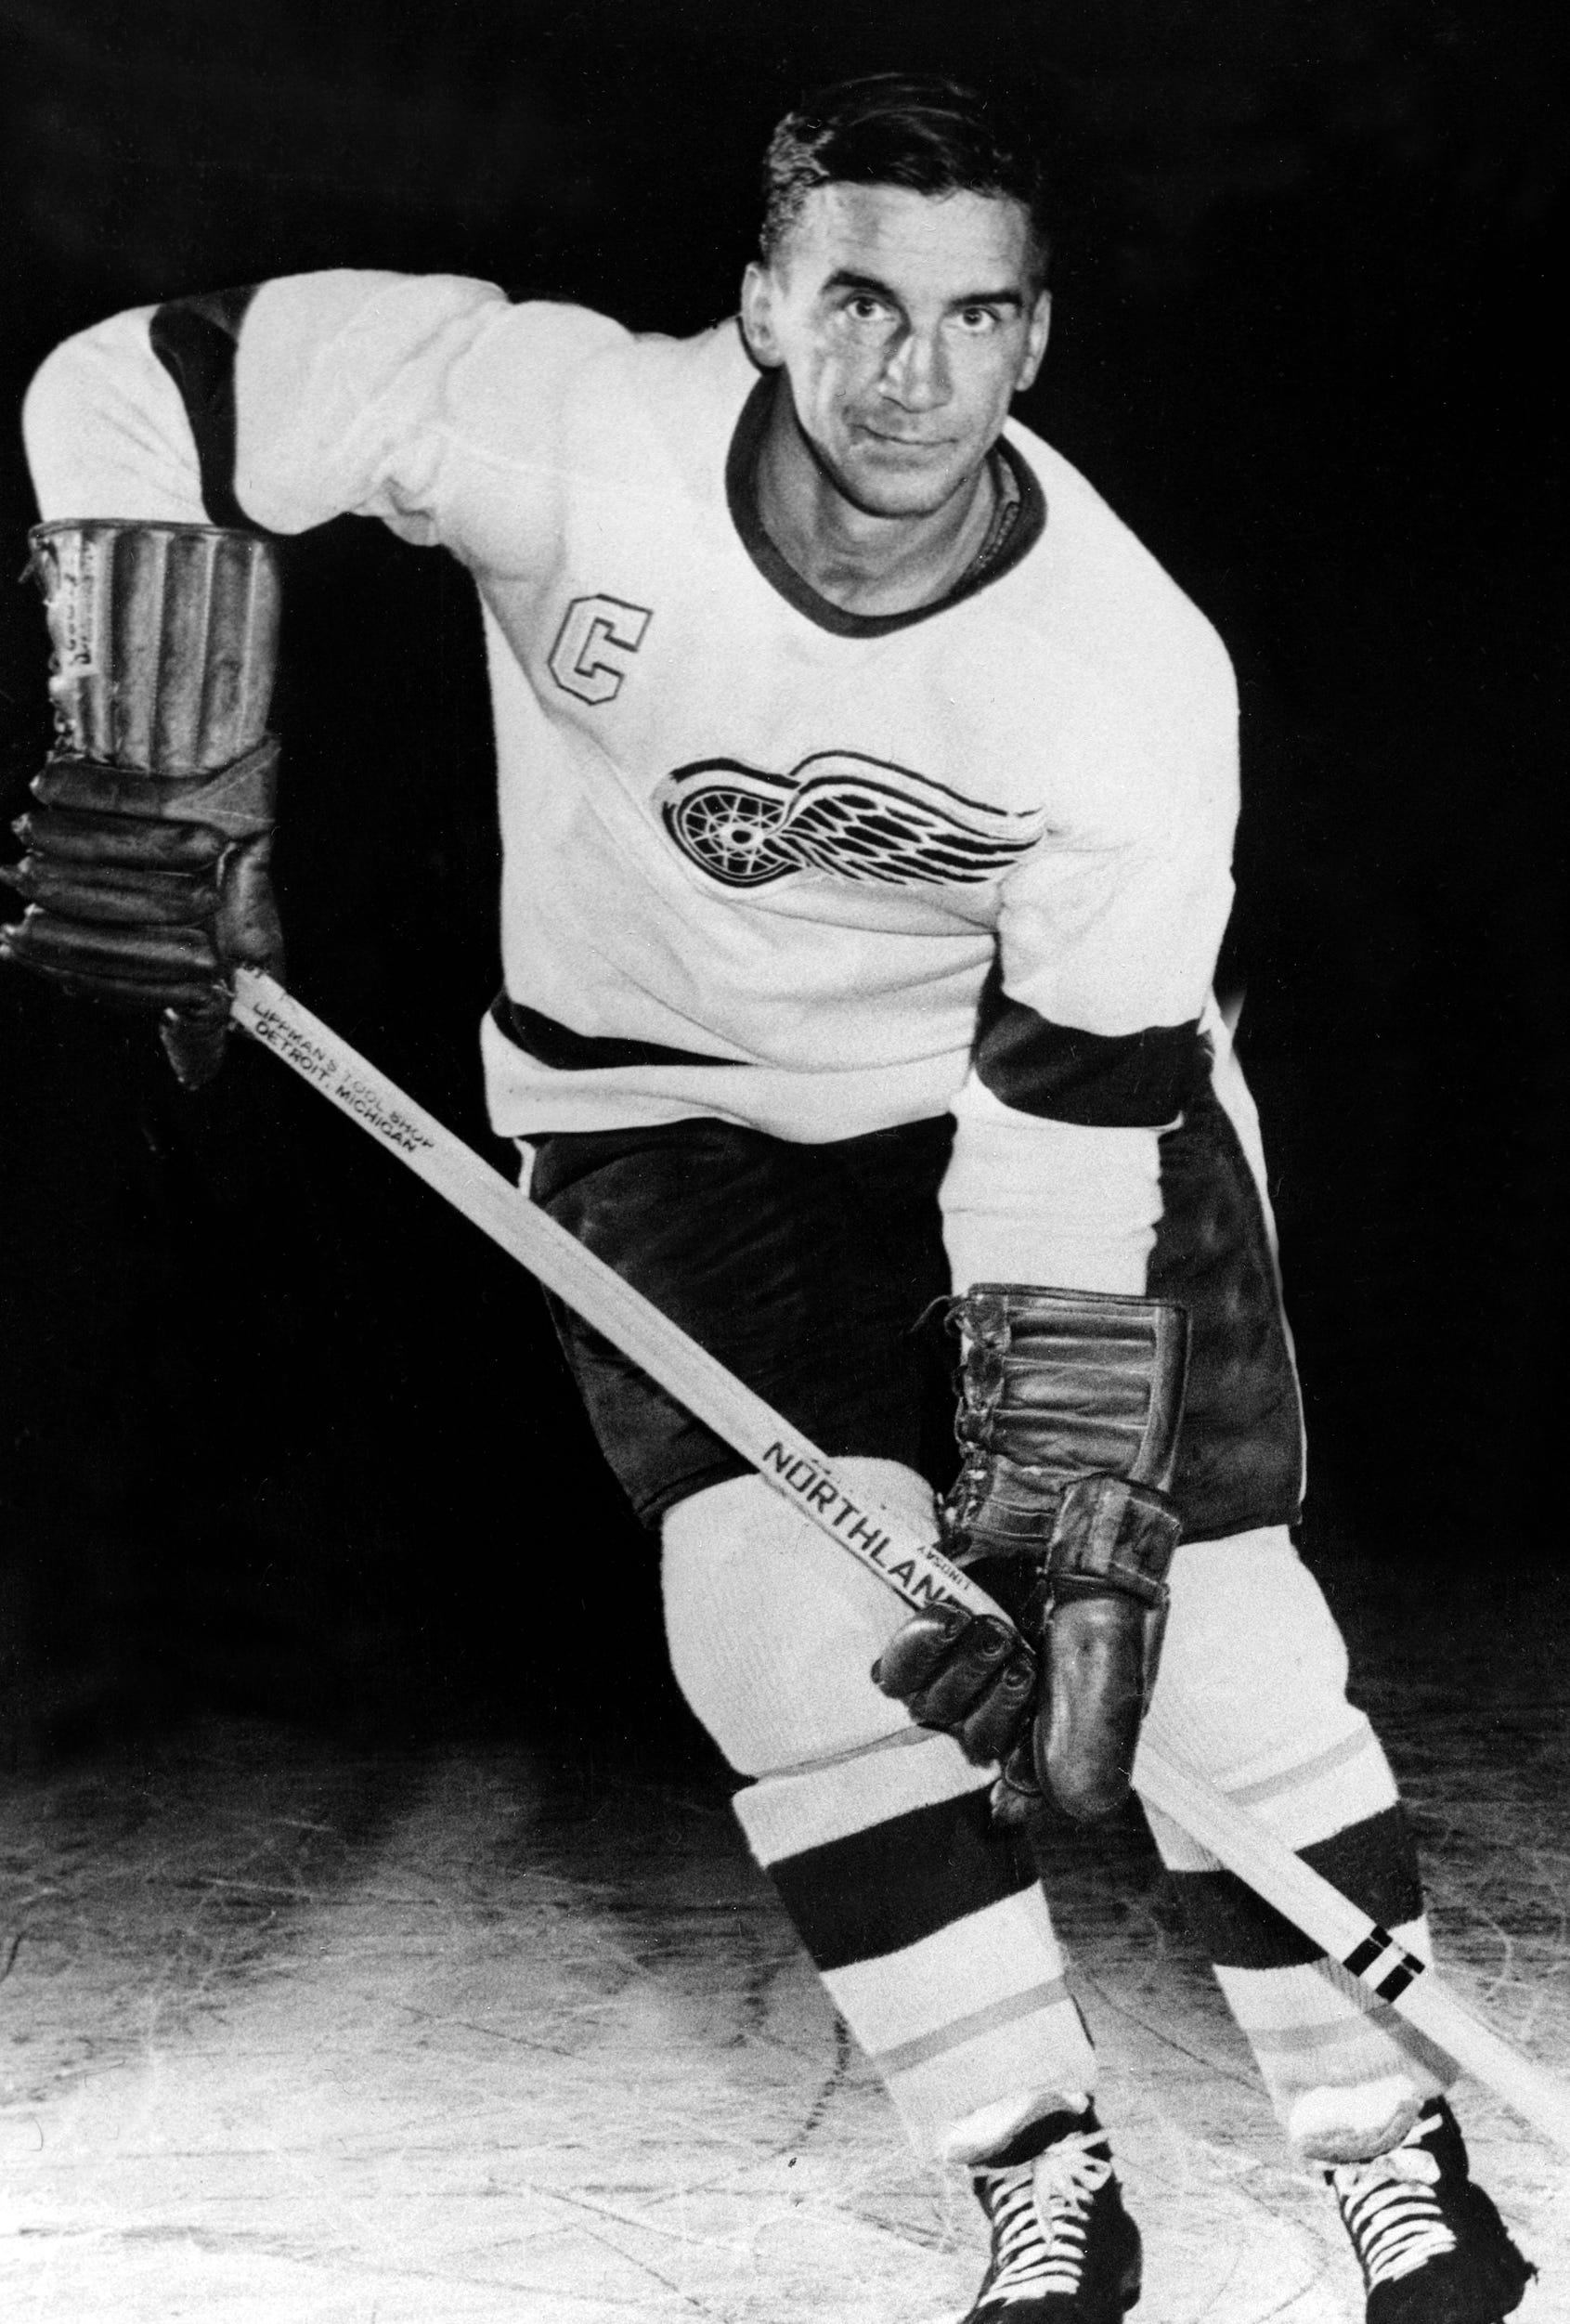 Ted Lindsay, captain of the Detroit Red Wings, is shown in action in 1956.